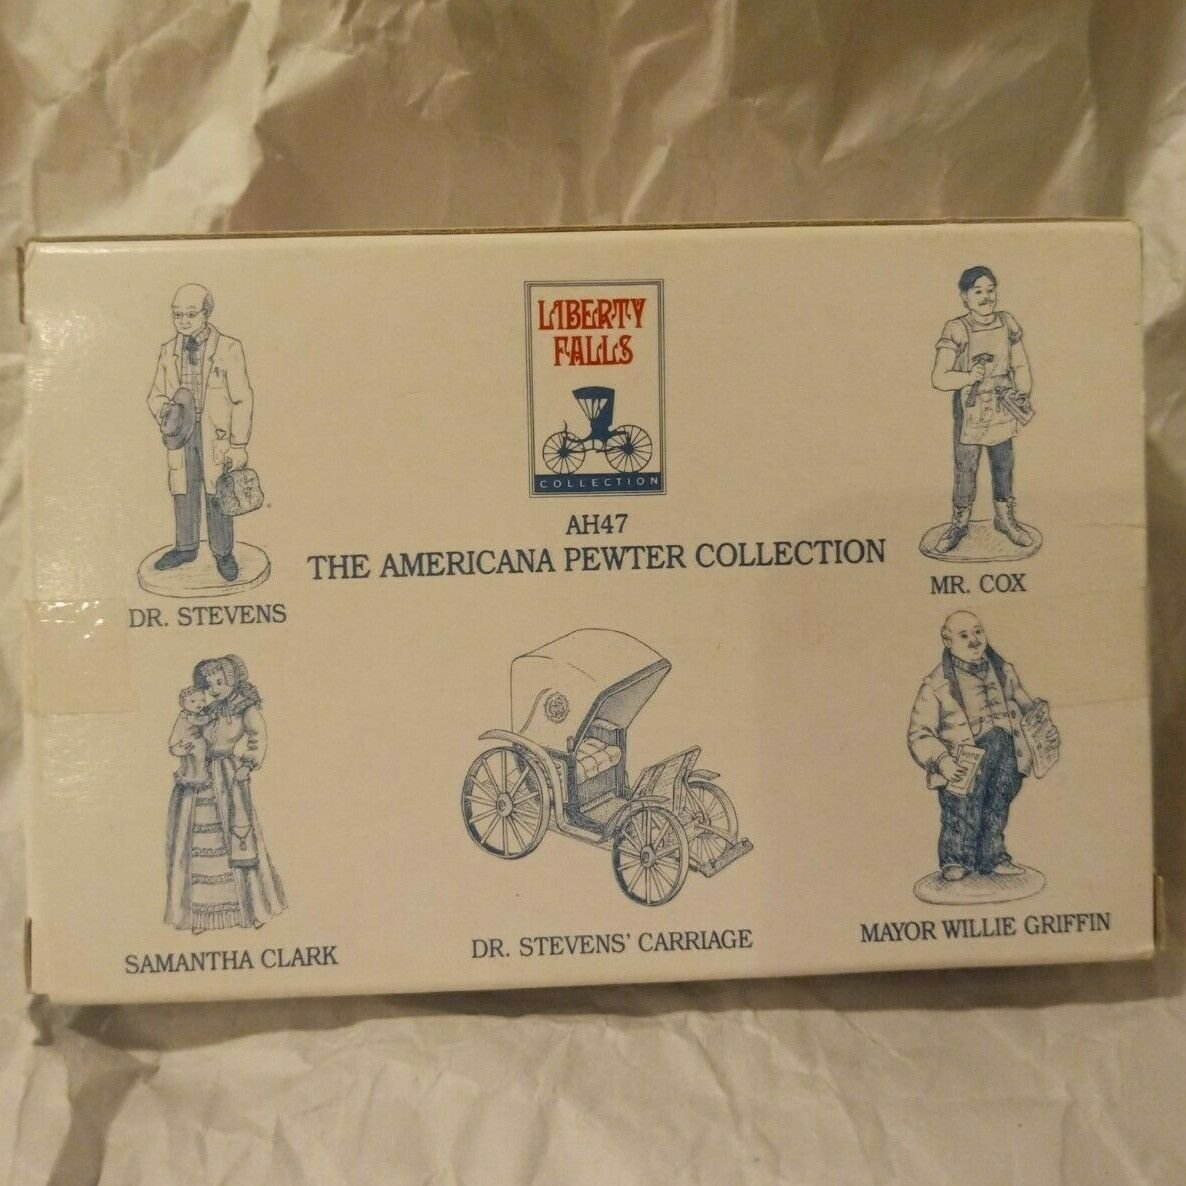 Liberty Falls Americana Pewter Collection AH47 Dr. Stevens' Carriage Figurines